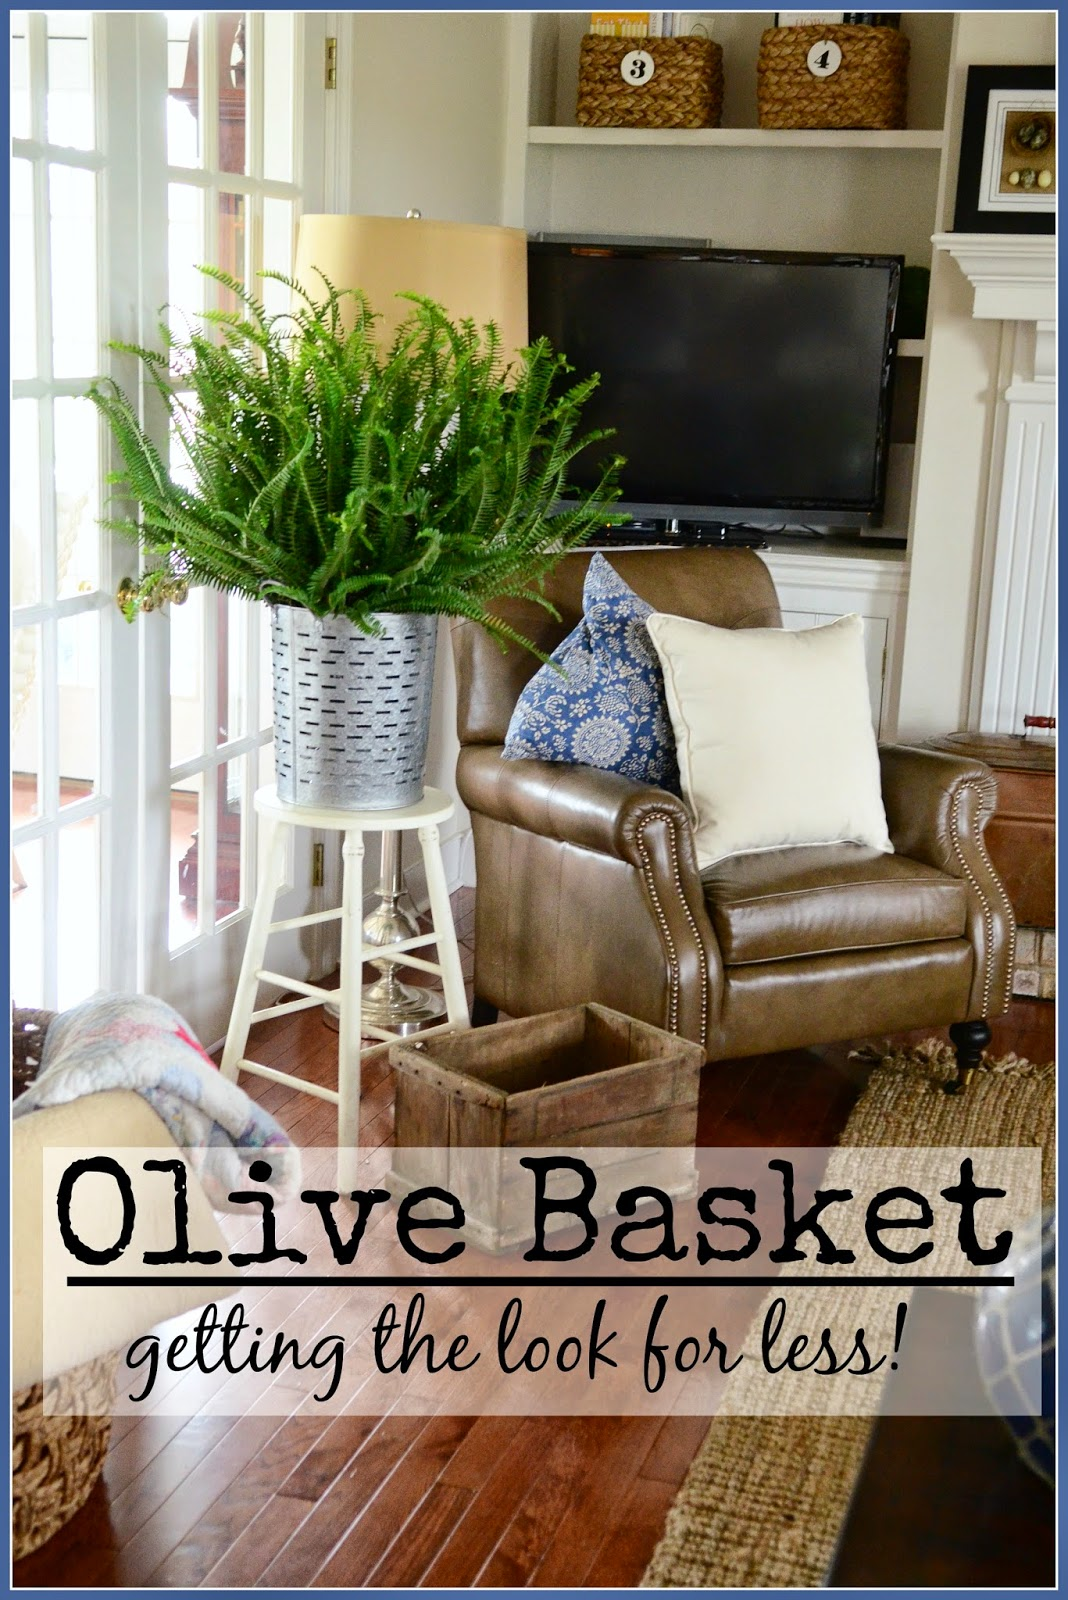 olive basket-get the look for less